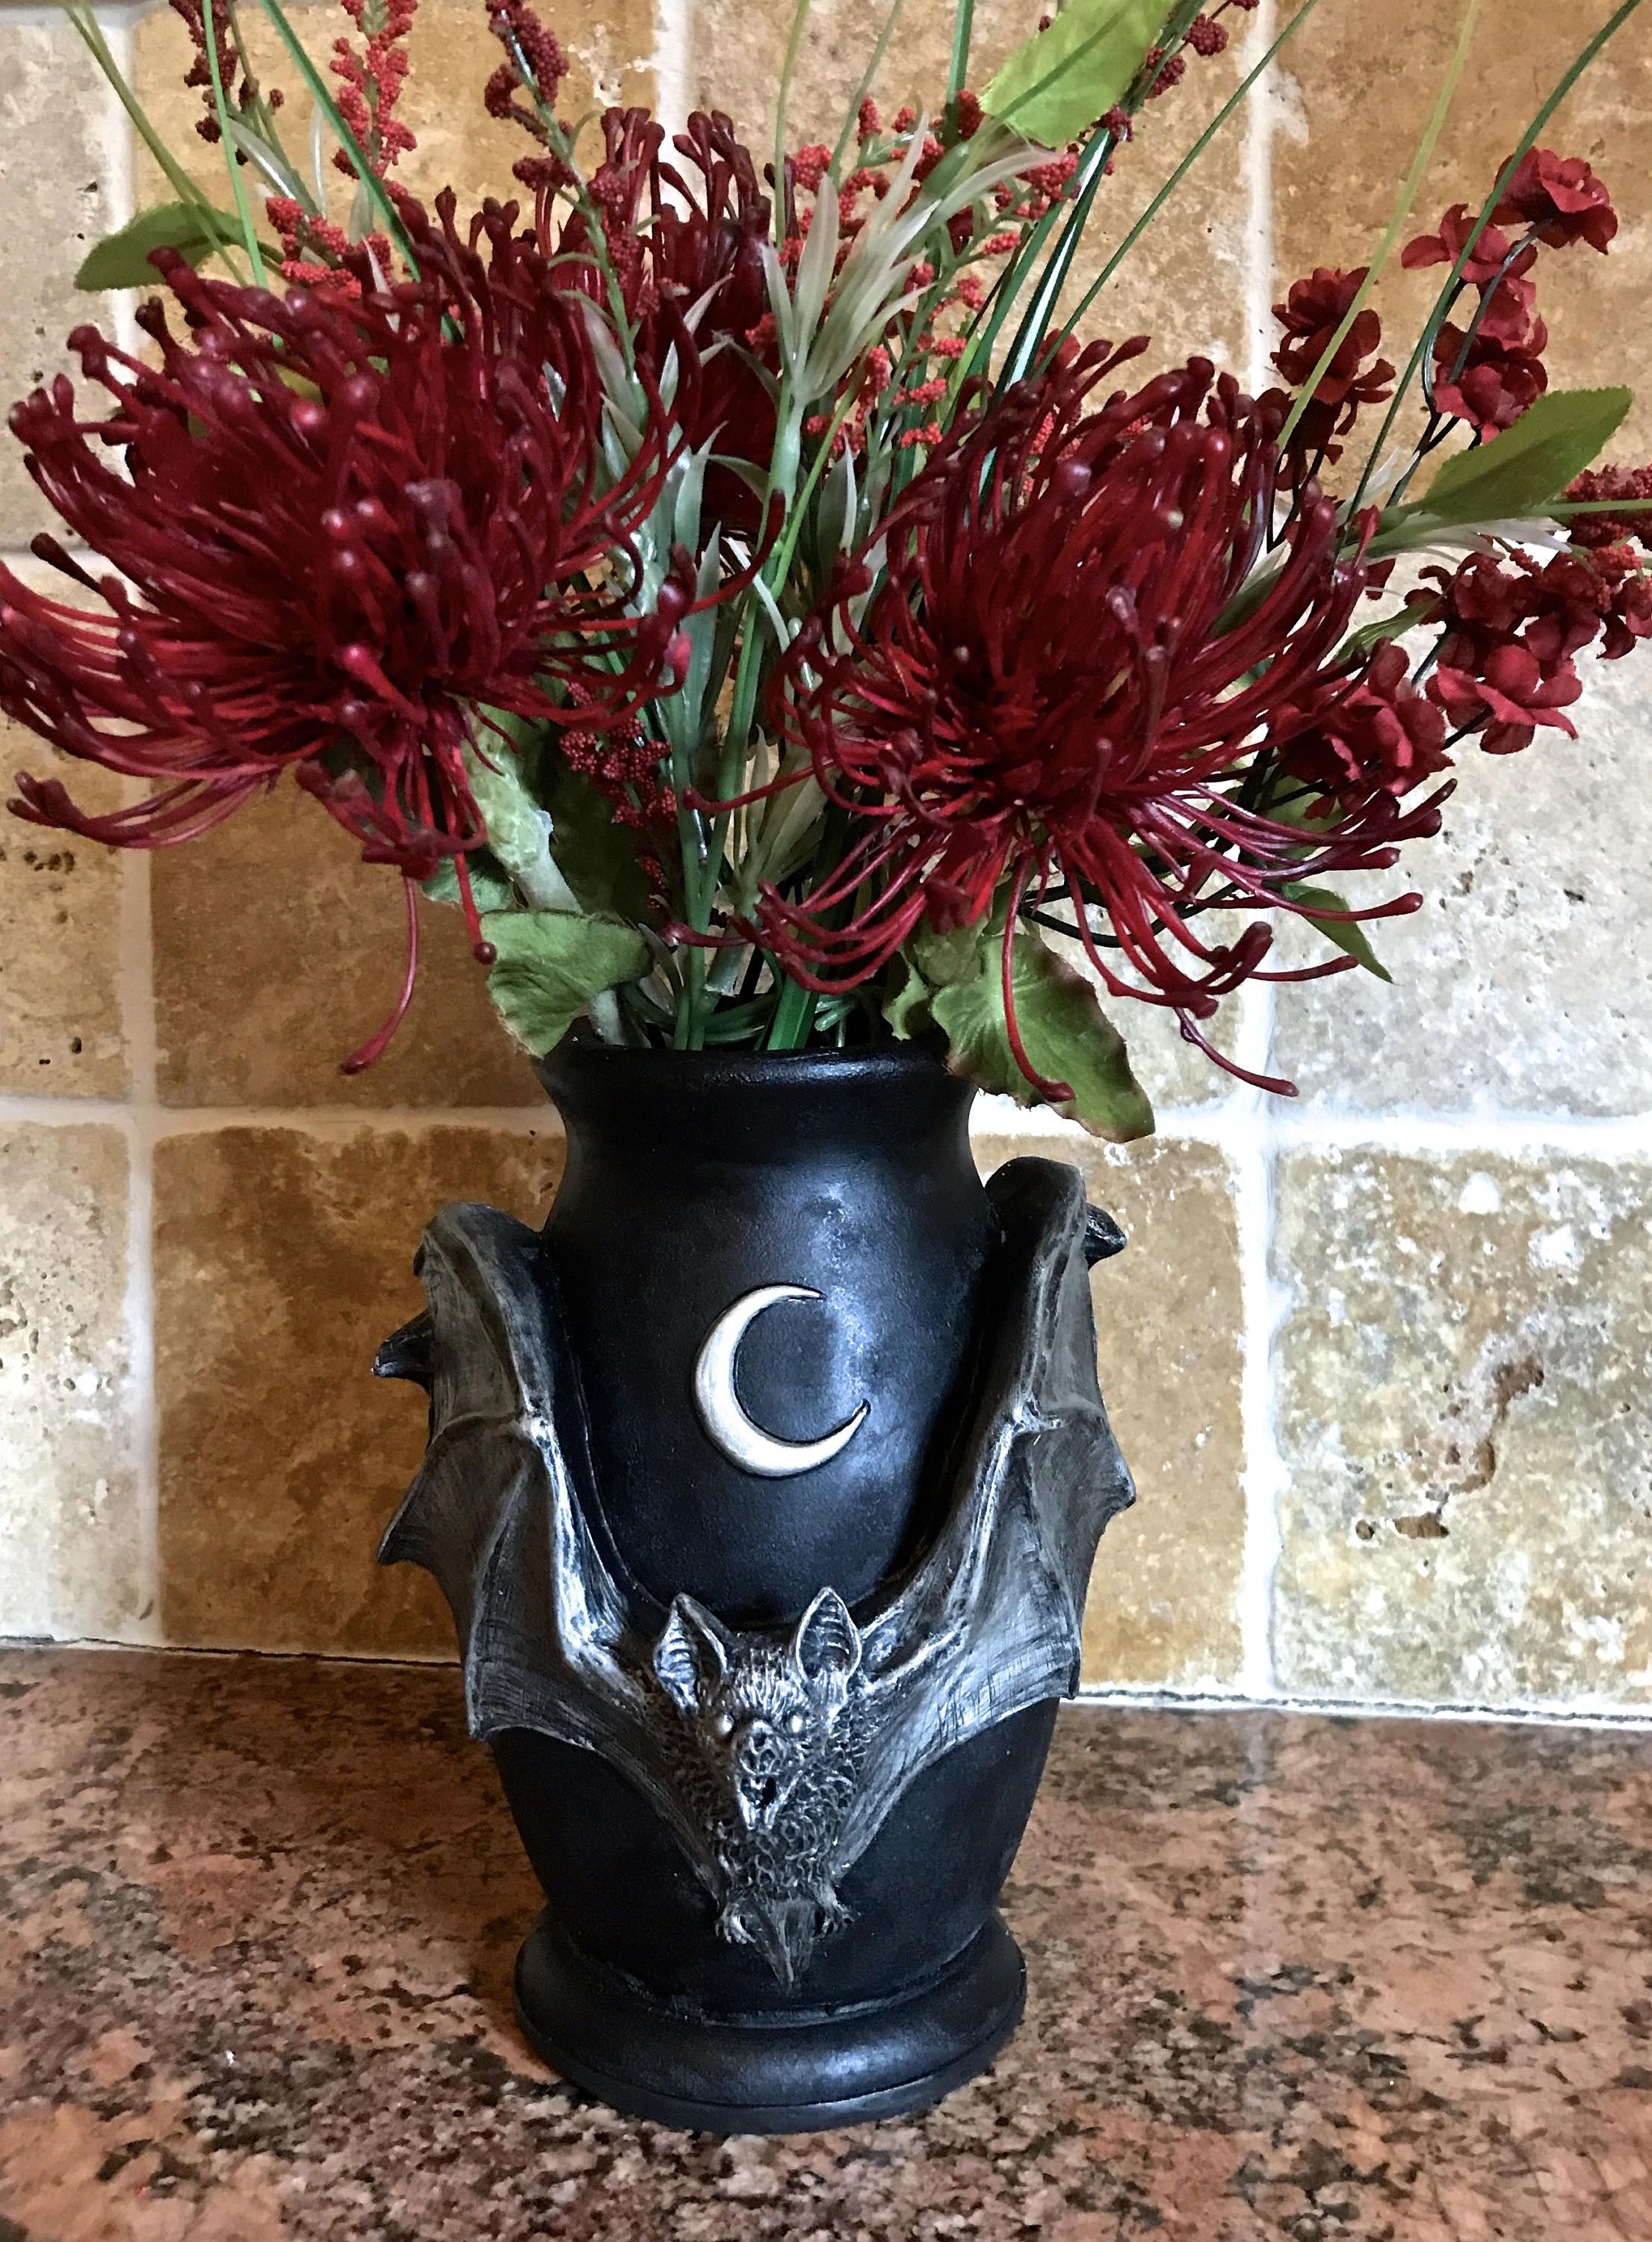 Stay In the Vase Cemetery Flowers Of 45 How to Make Silk Flower Arrangements for Cemetery Vases the with Regard to 45 How to Make Silk Flower Arrangements for Cemetery Vases